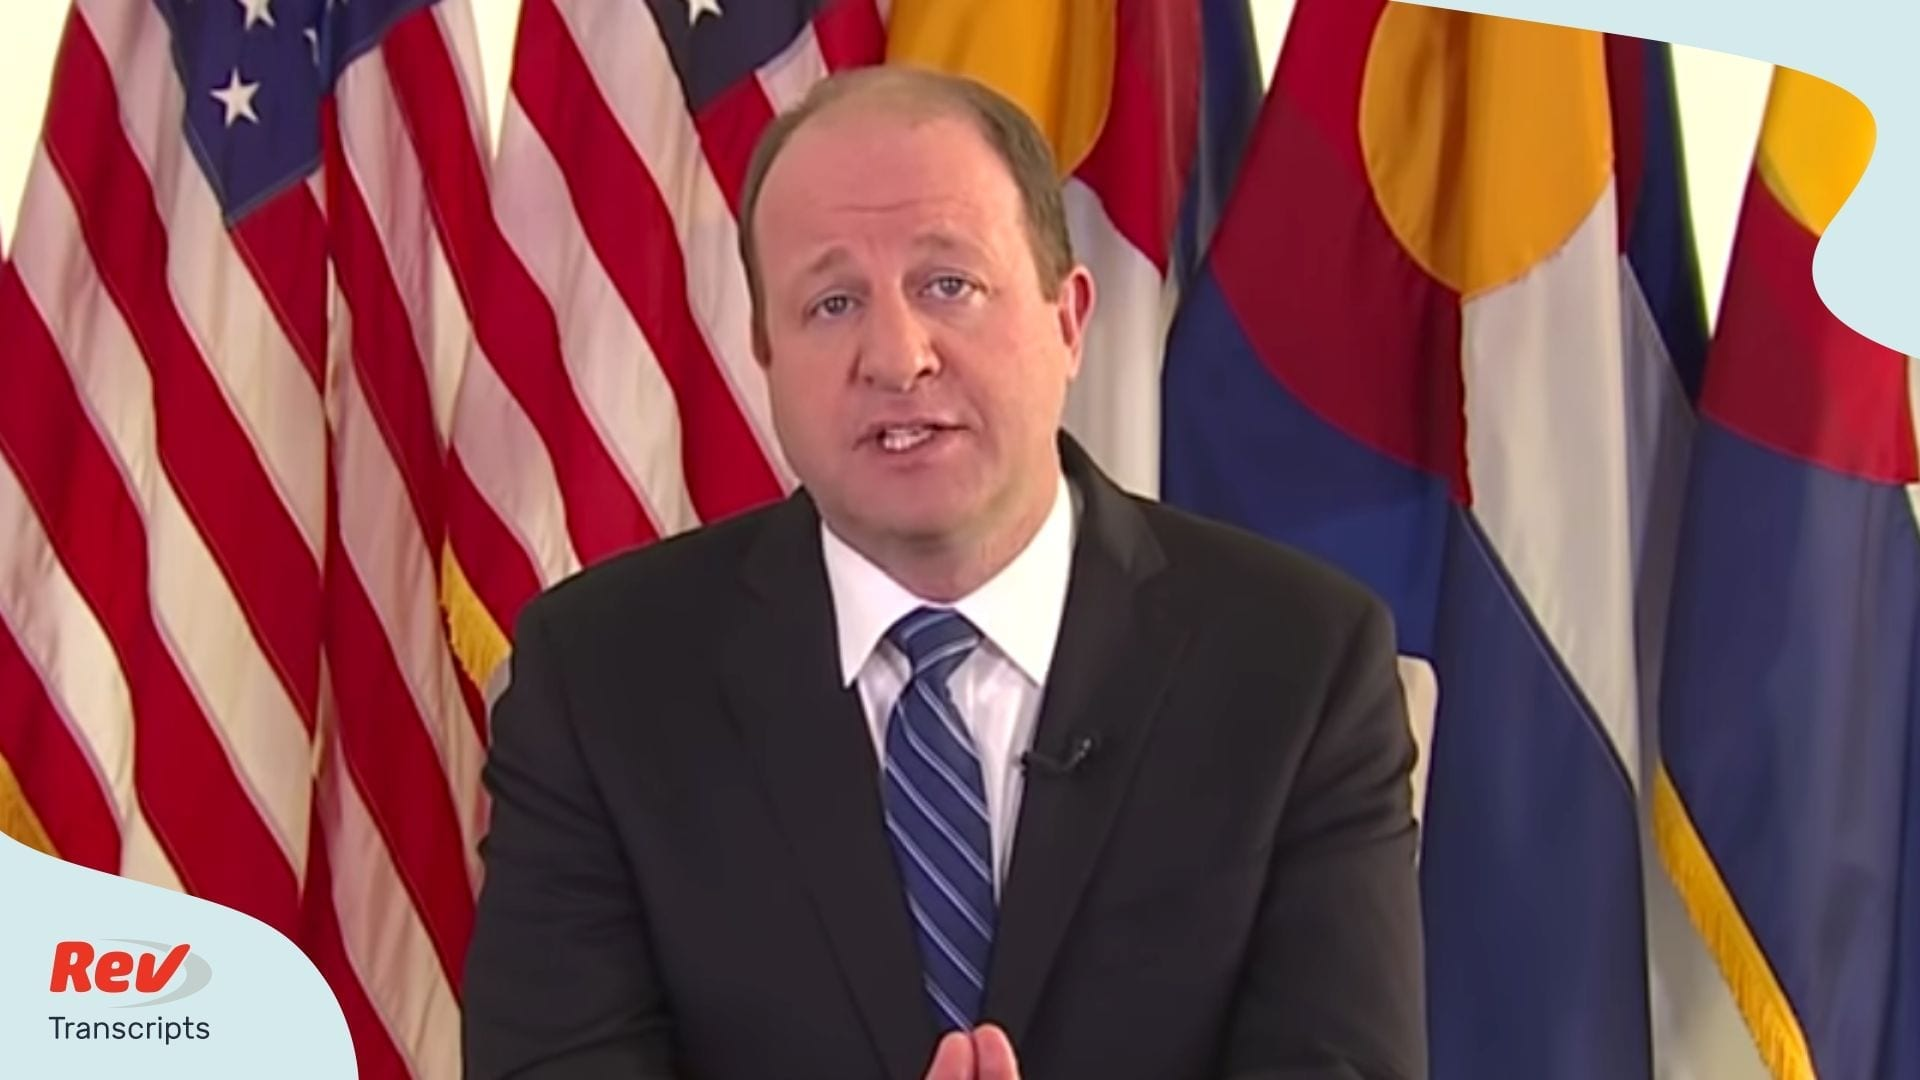 Gov Jared Polis Transcript Briefing April 7